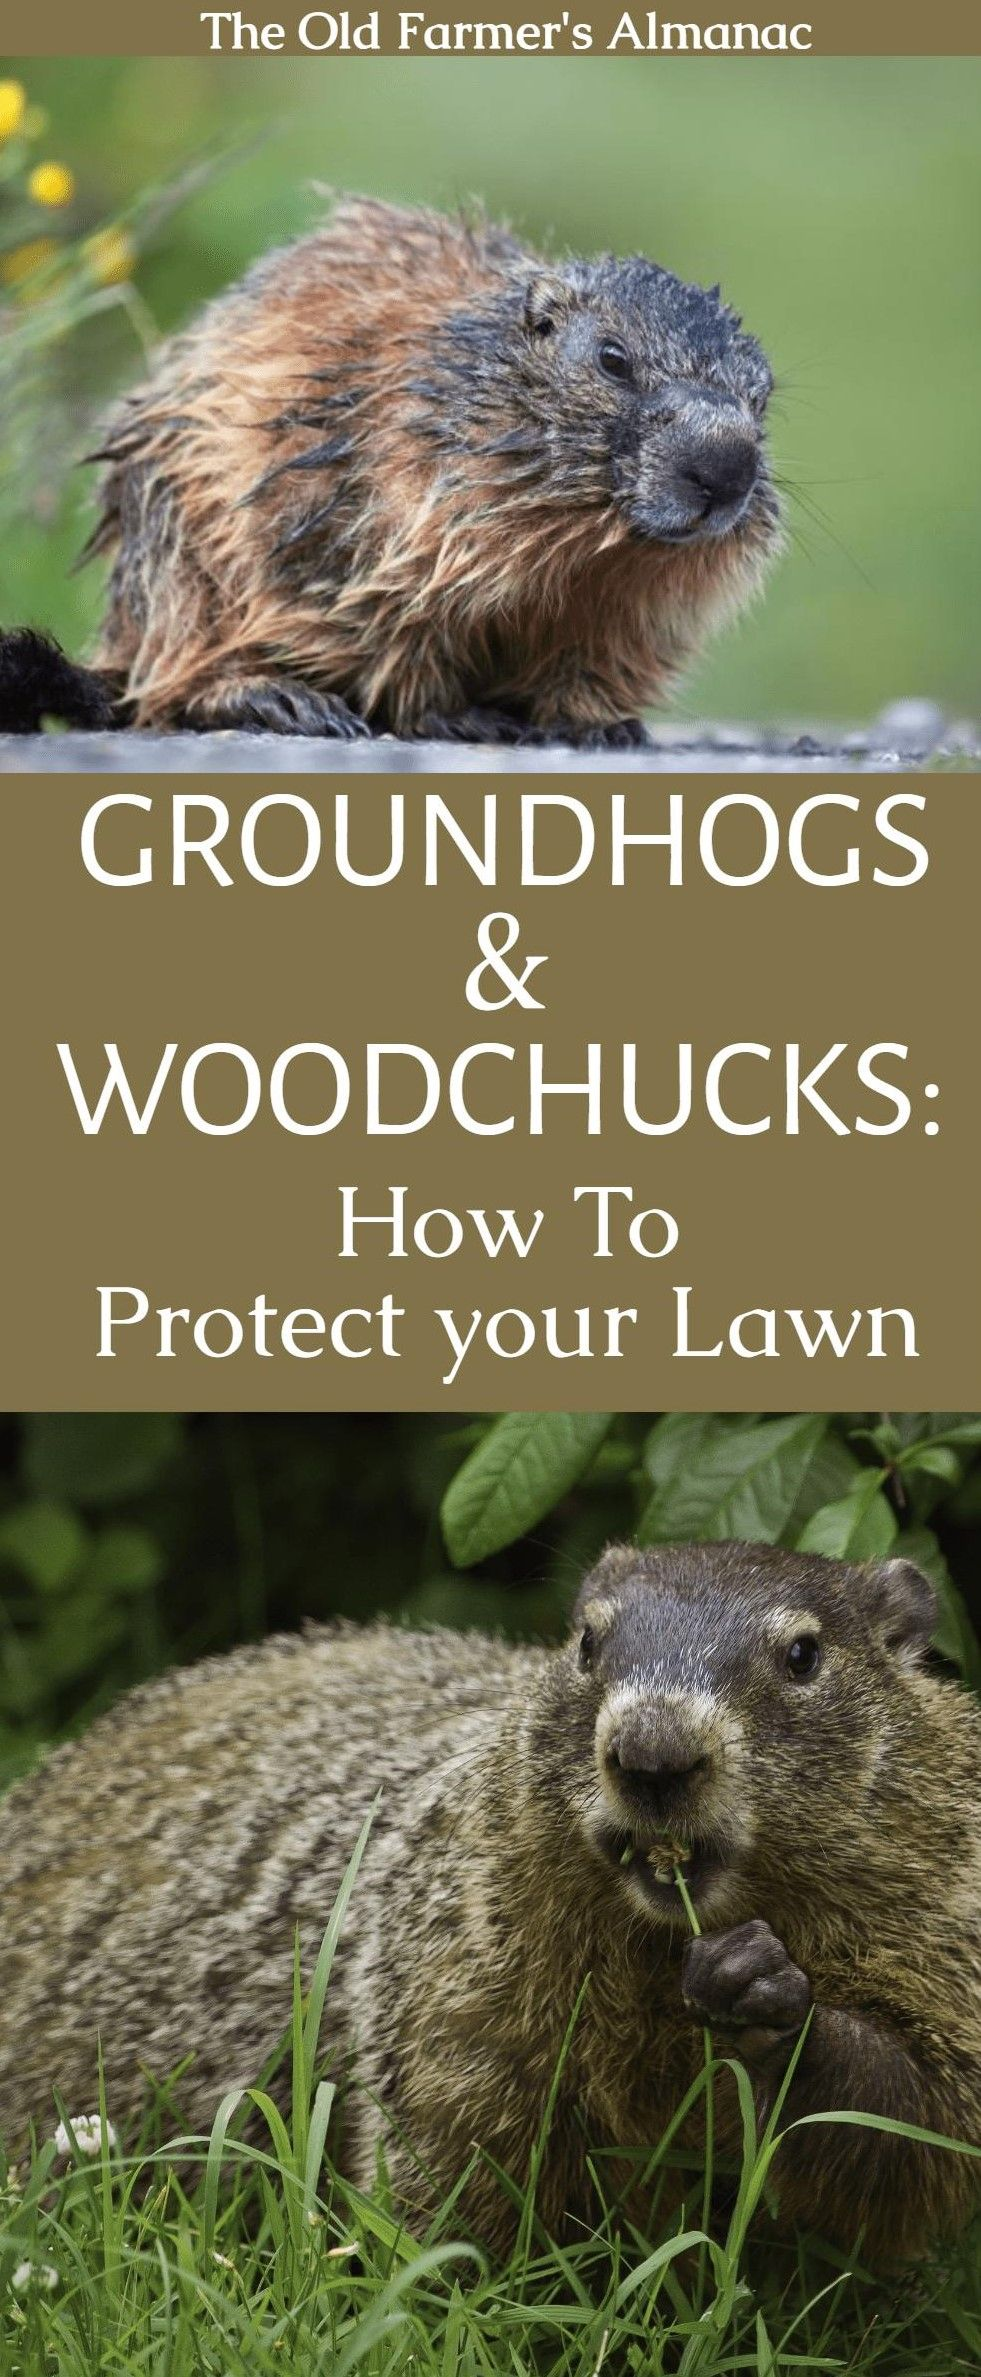 woodchucks or groundhogs gardens farmers almanac and old